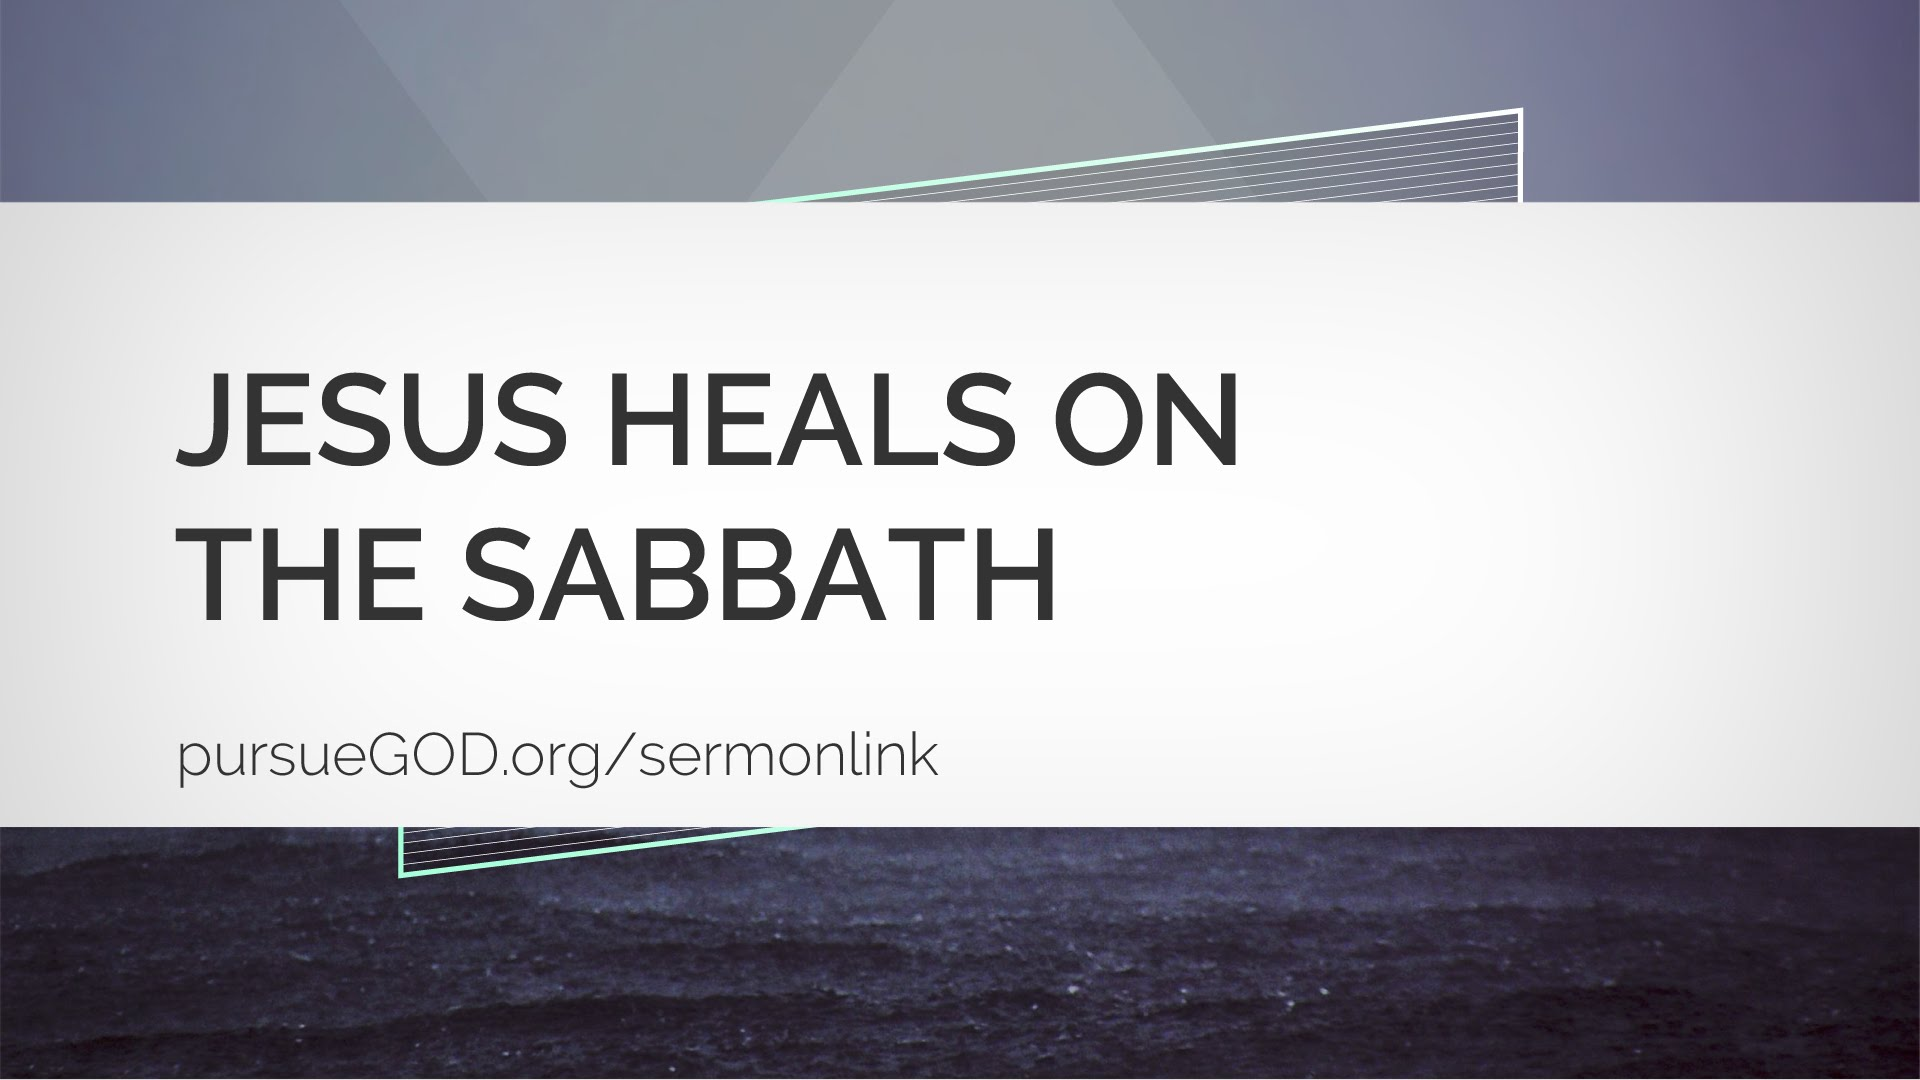 Jesus Heals on the Sabbath